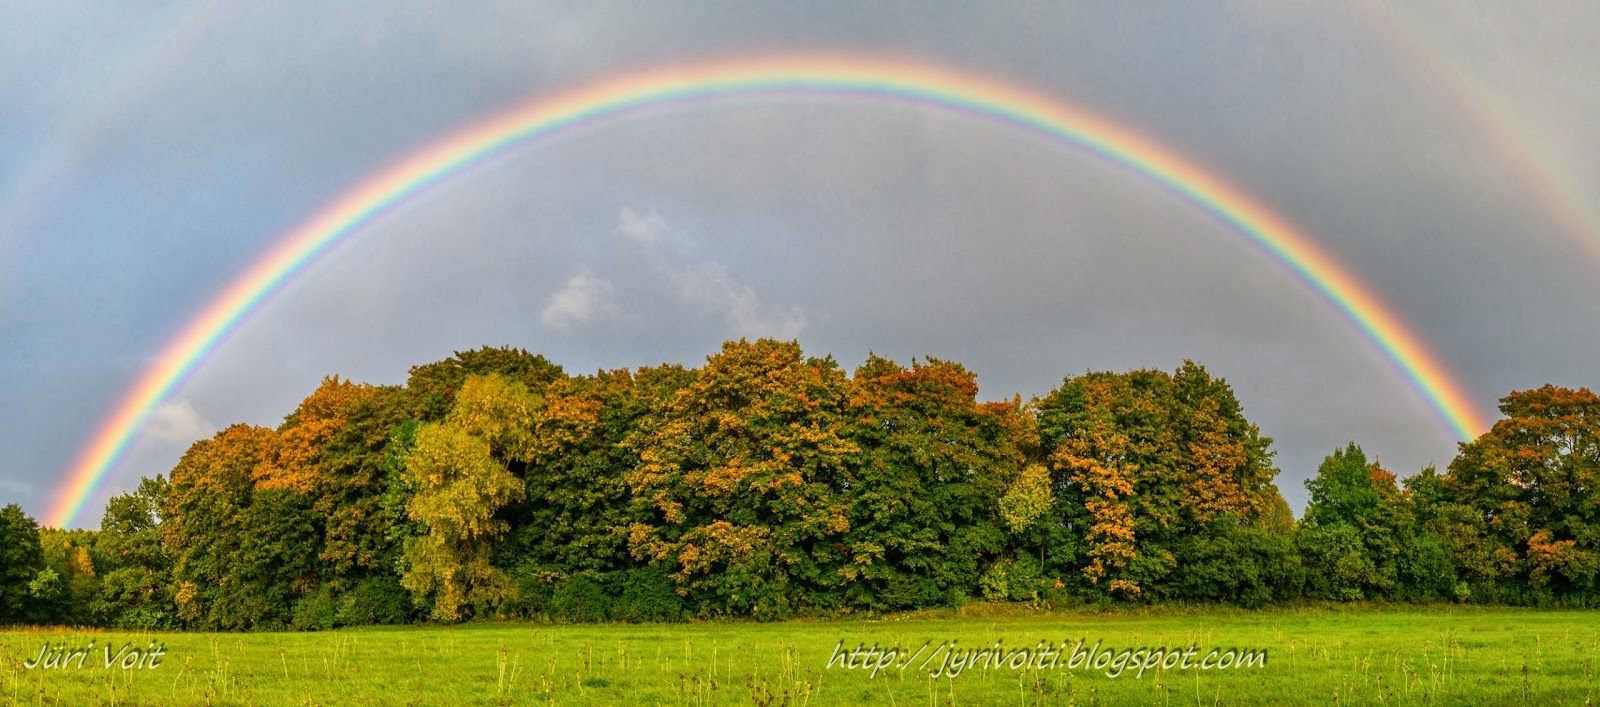 View larger. | Double wonders: double rainbow and autumn leaves.  Photo by Juri Voit of Estonia.